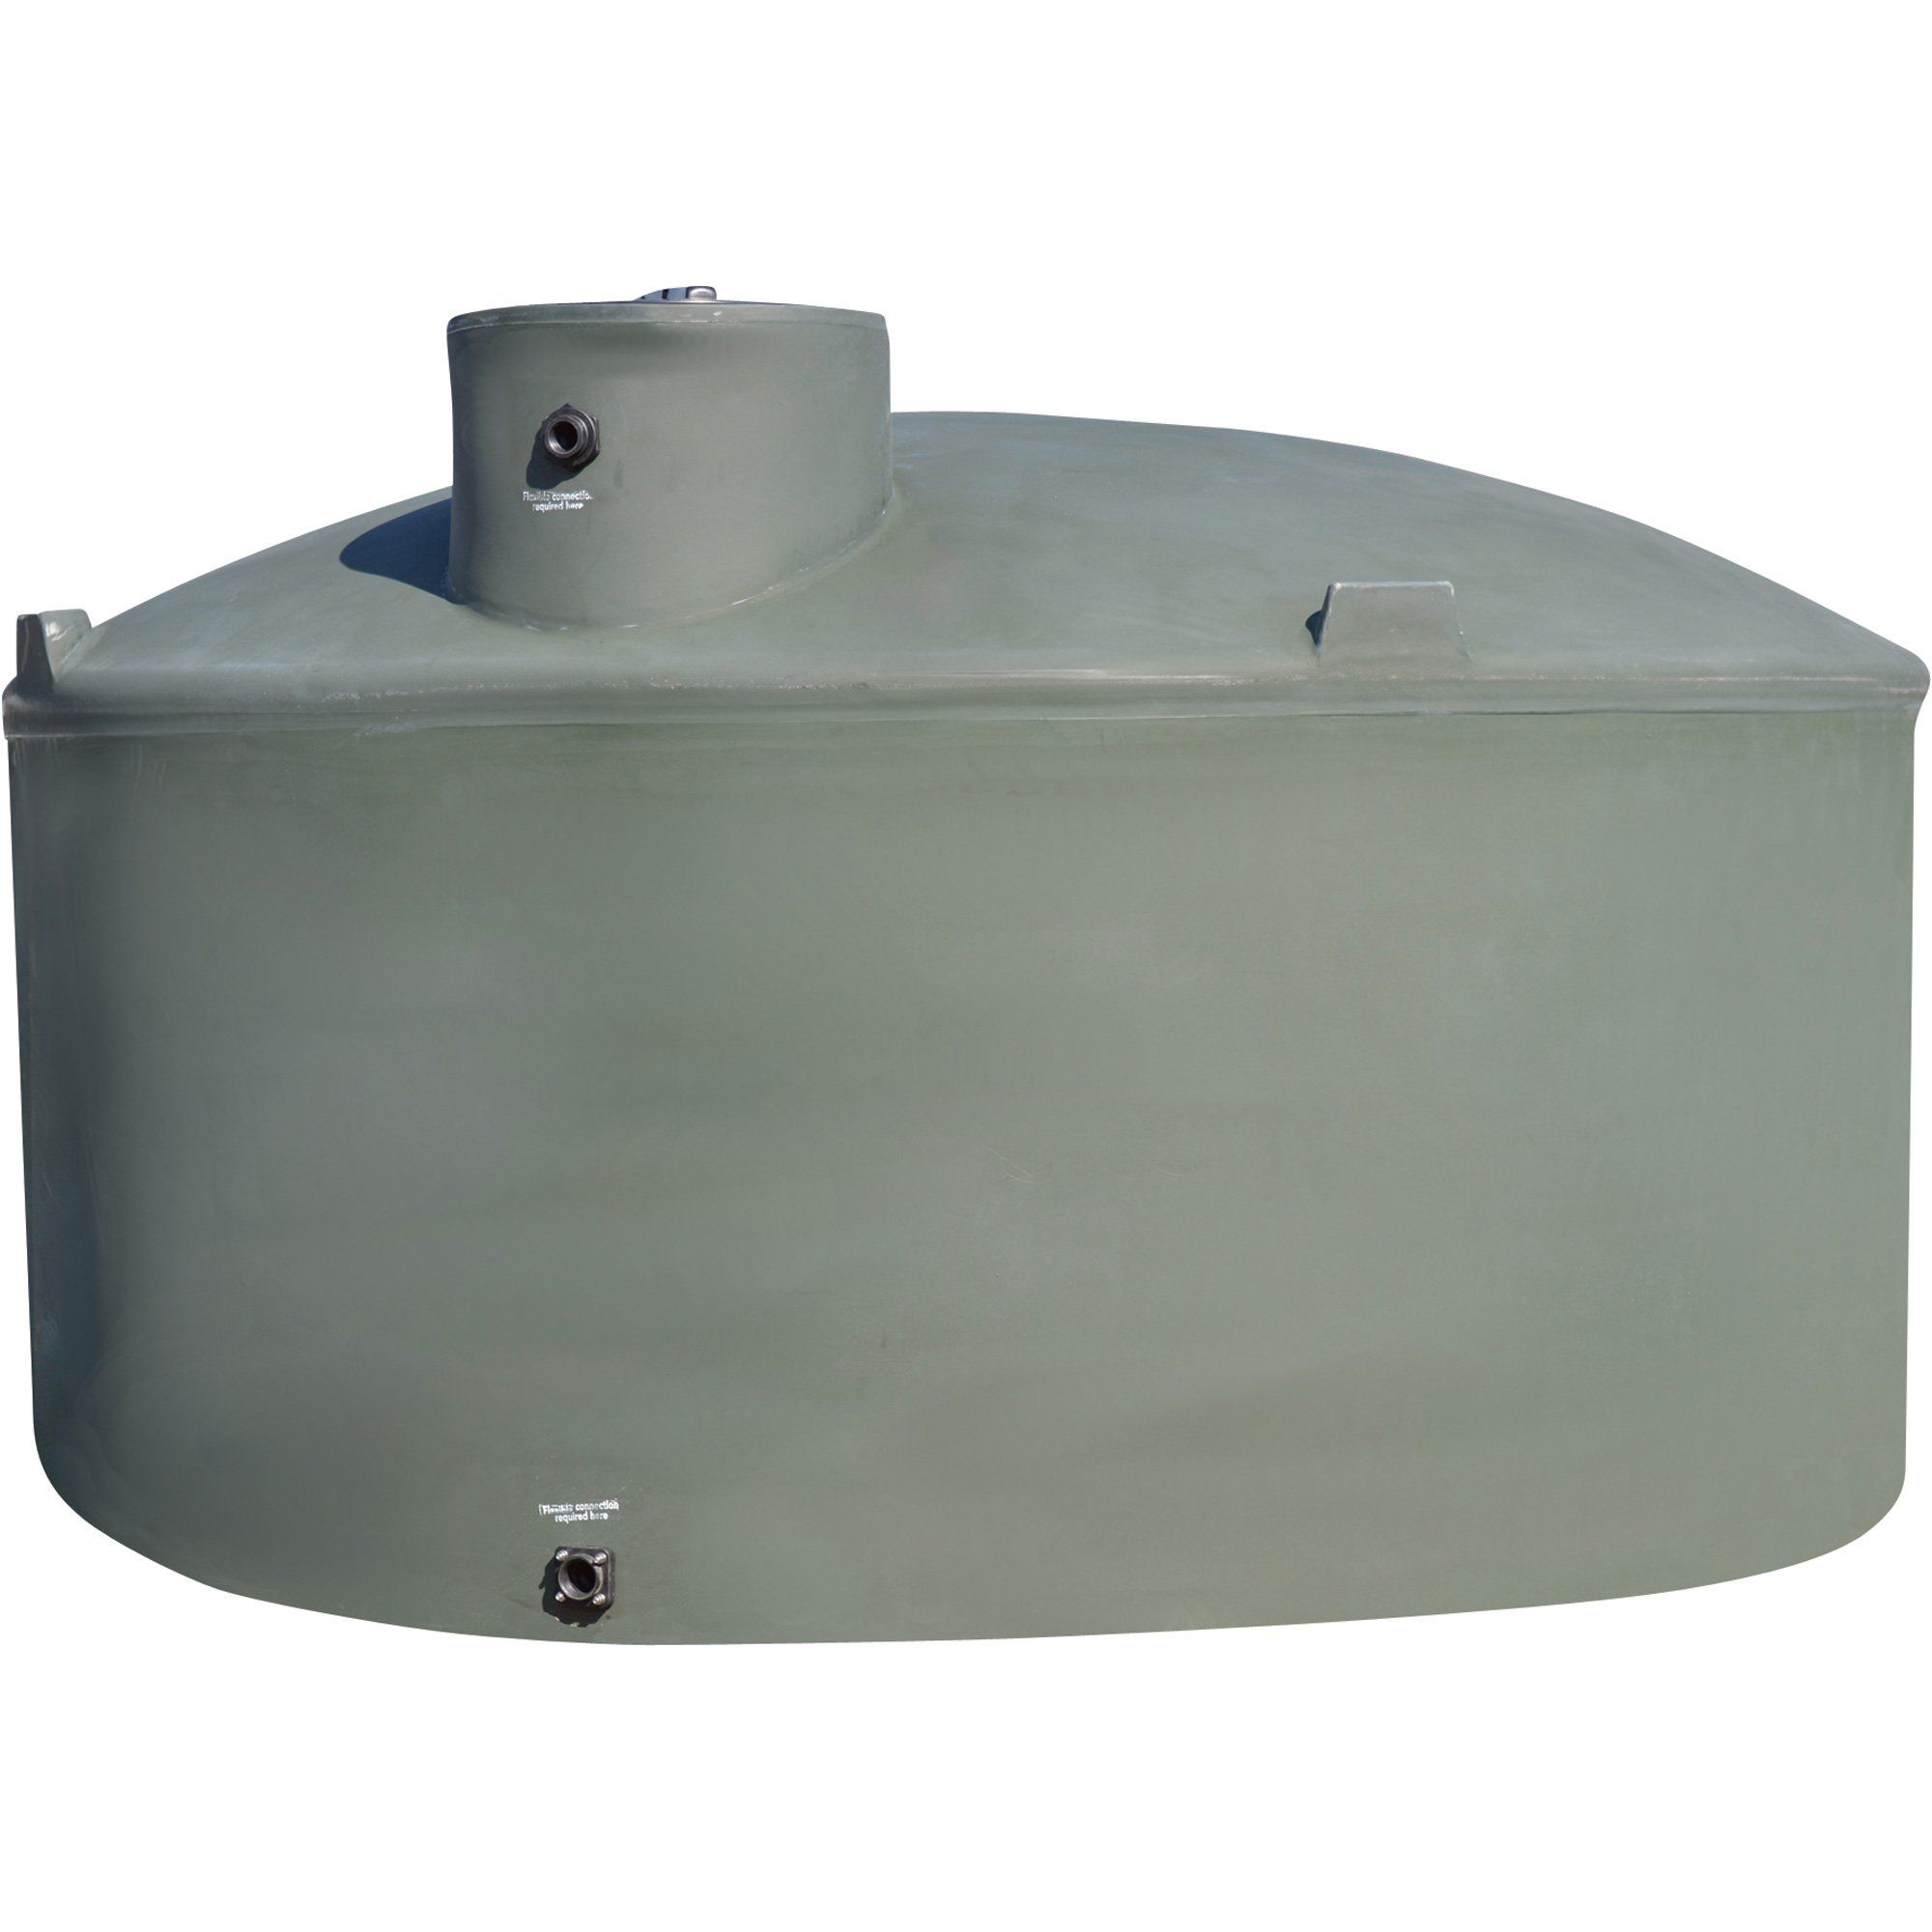 Snyder Industries Vertical Natural Above Ground Water Tanks 1500 Gallon Capacity Dark Green Model 1770300w99803 Rain Water Collection System Rain Water Collection Aquaponics Diy